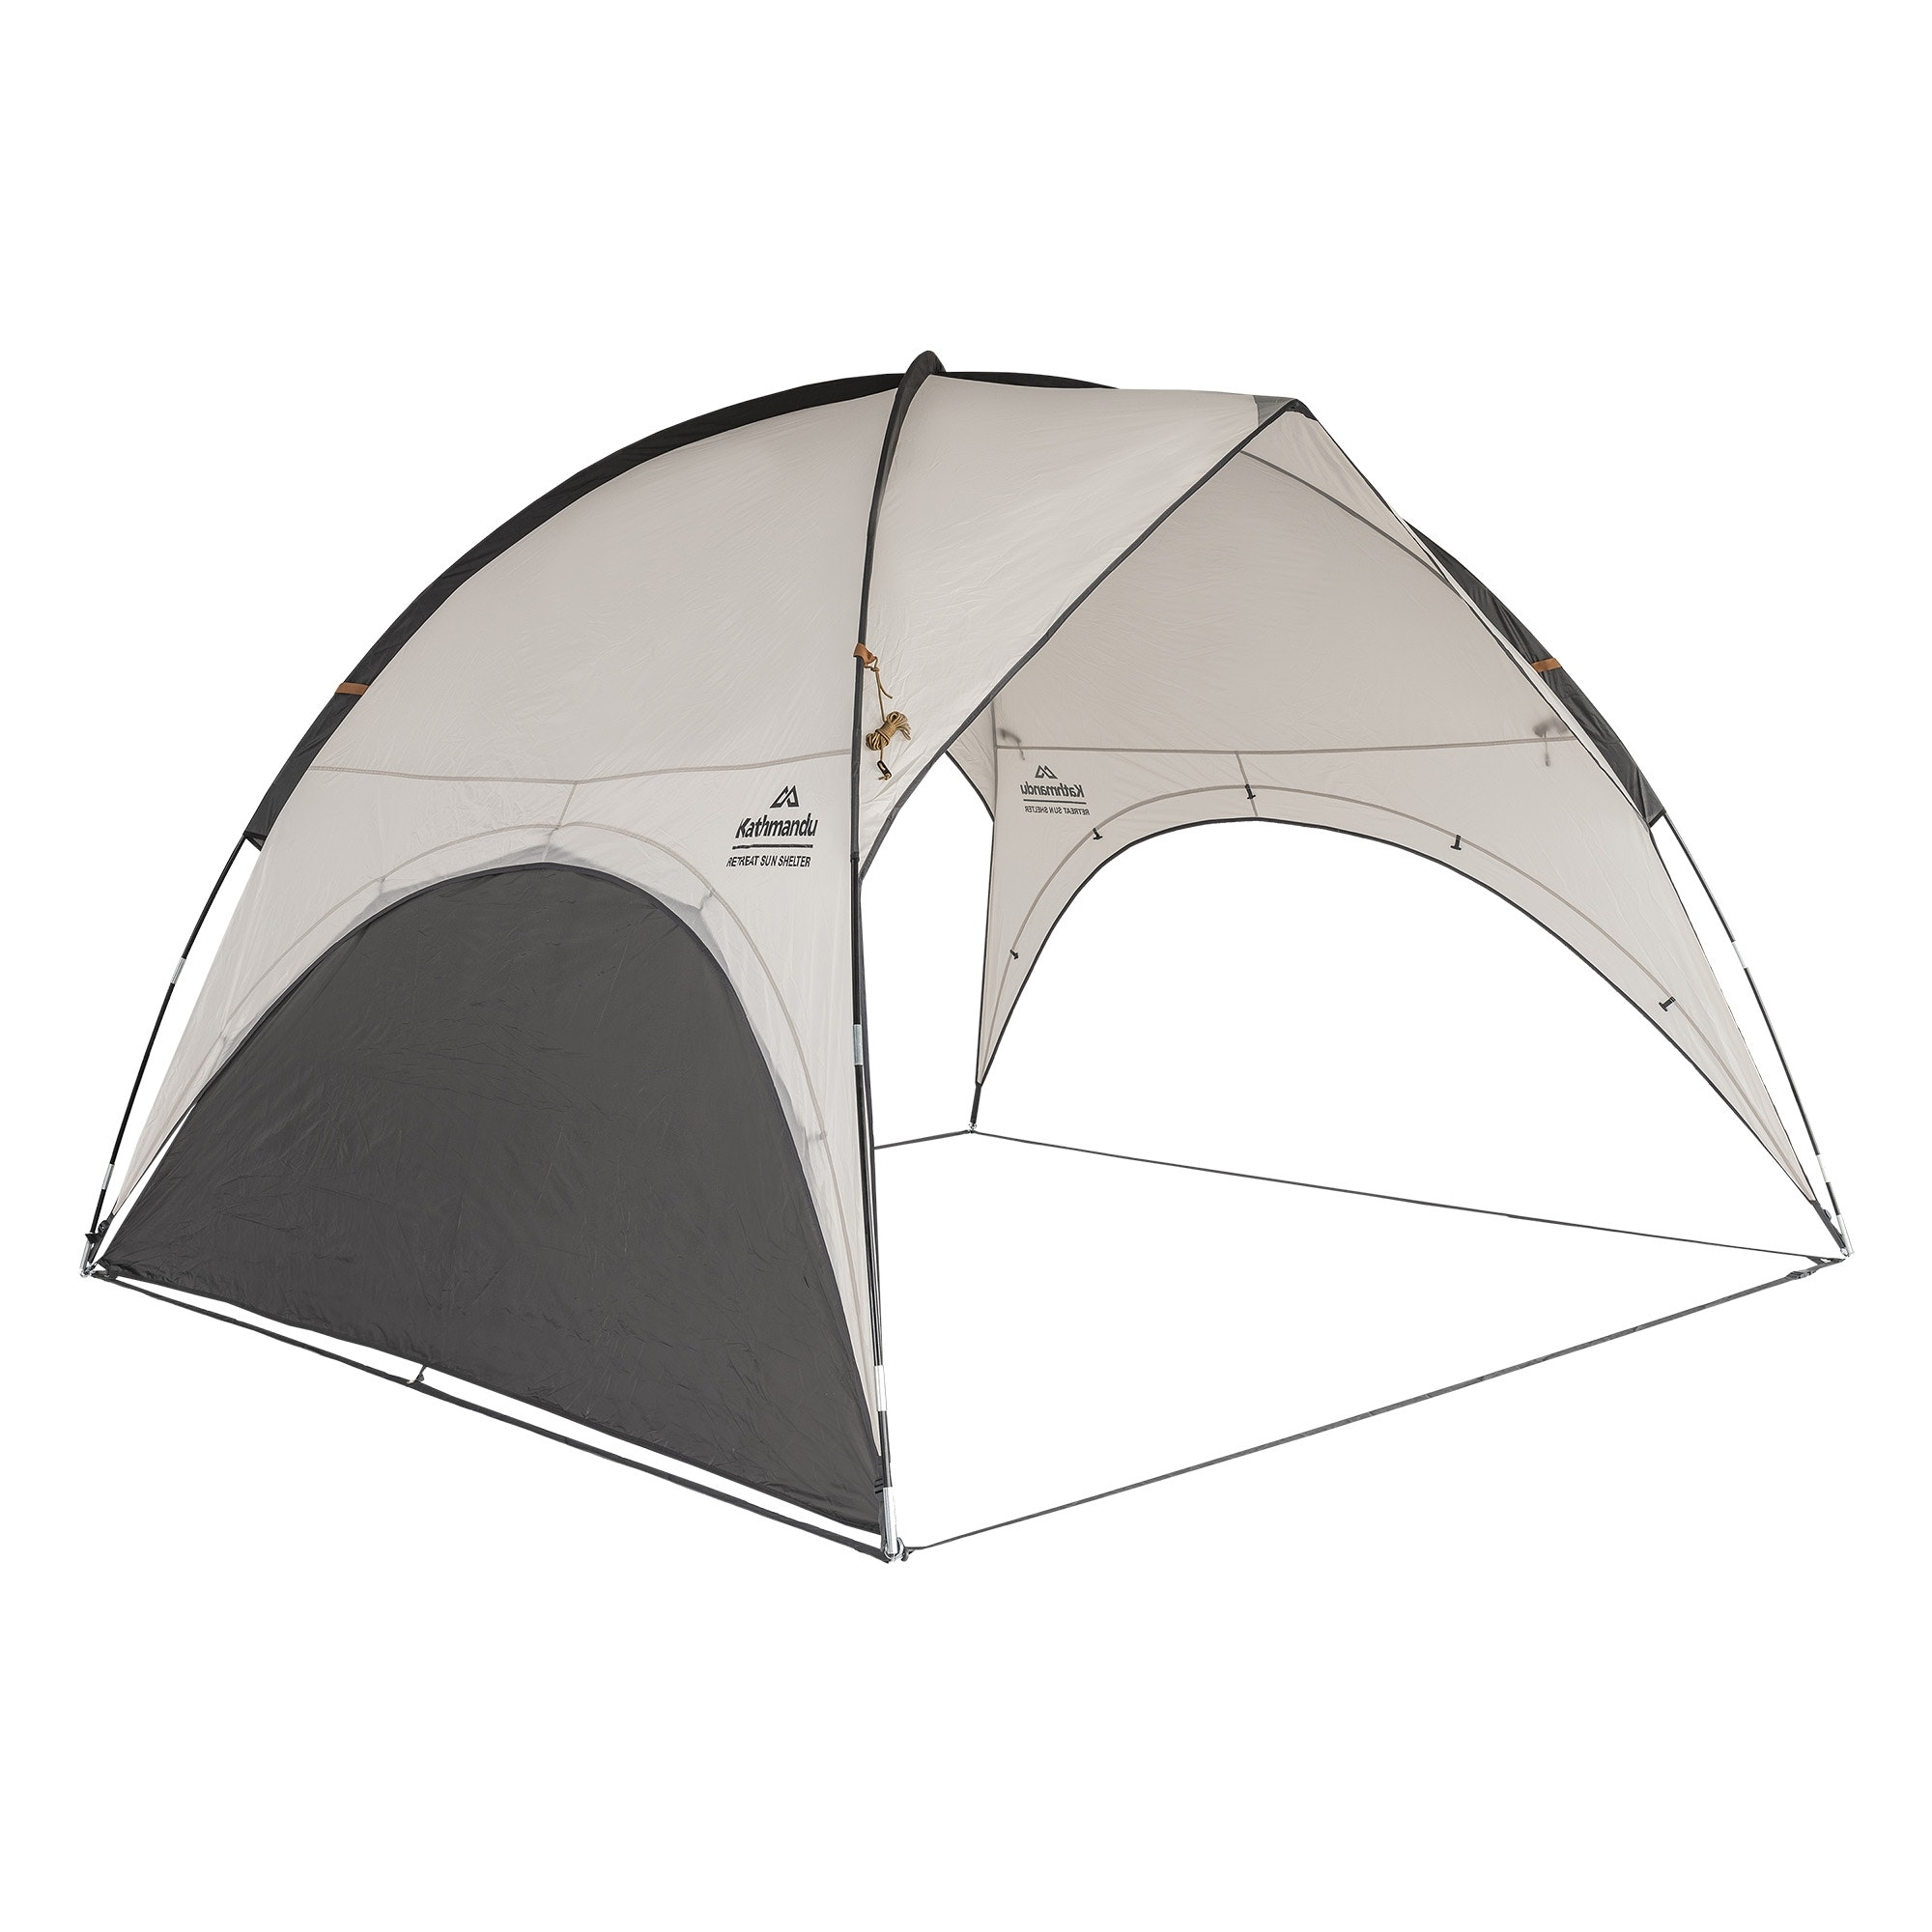 Retreat Large Sun Shelter v2  sc 1 st  Kathmandu & Beach Tents u0026 Shelters | Sun Shades u0026 Pop Up Tents | Kathmandu NZ